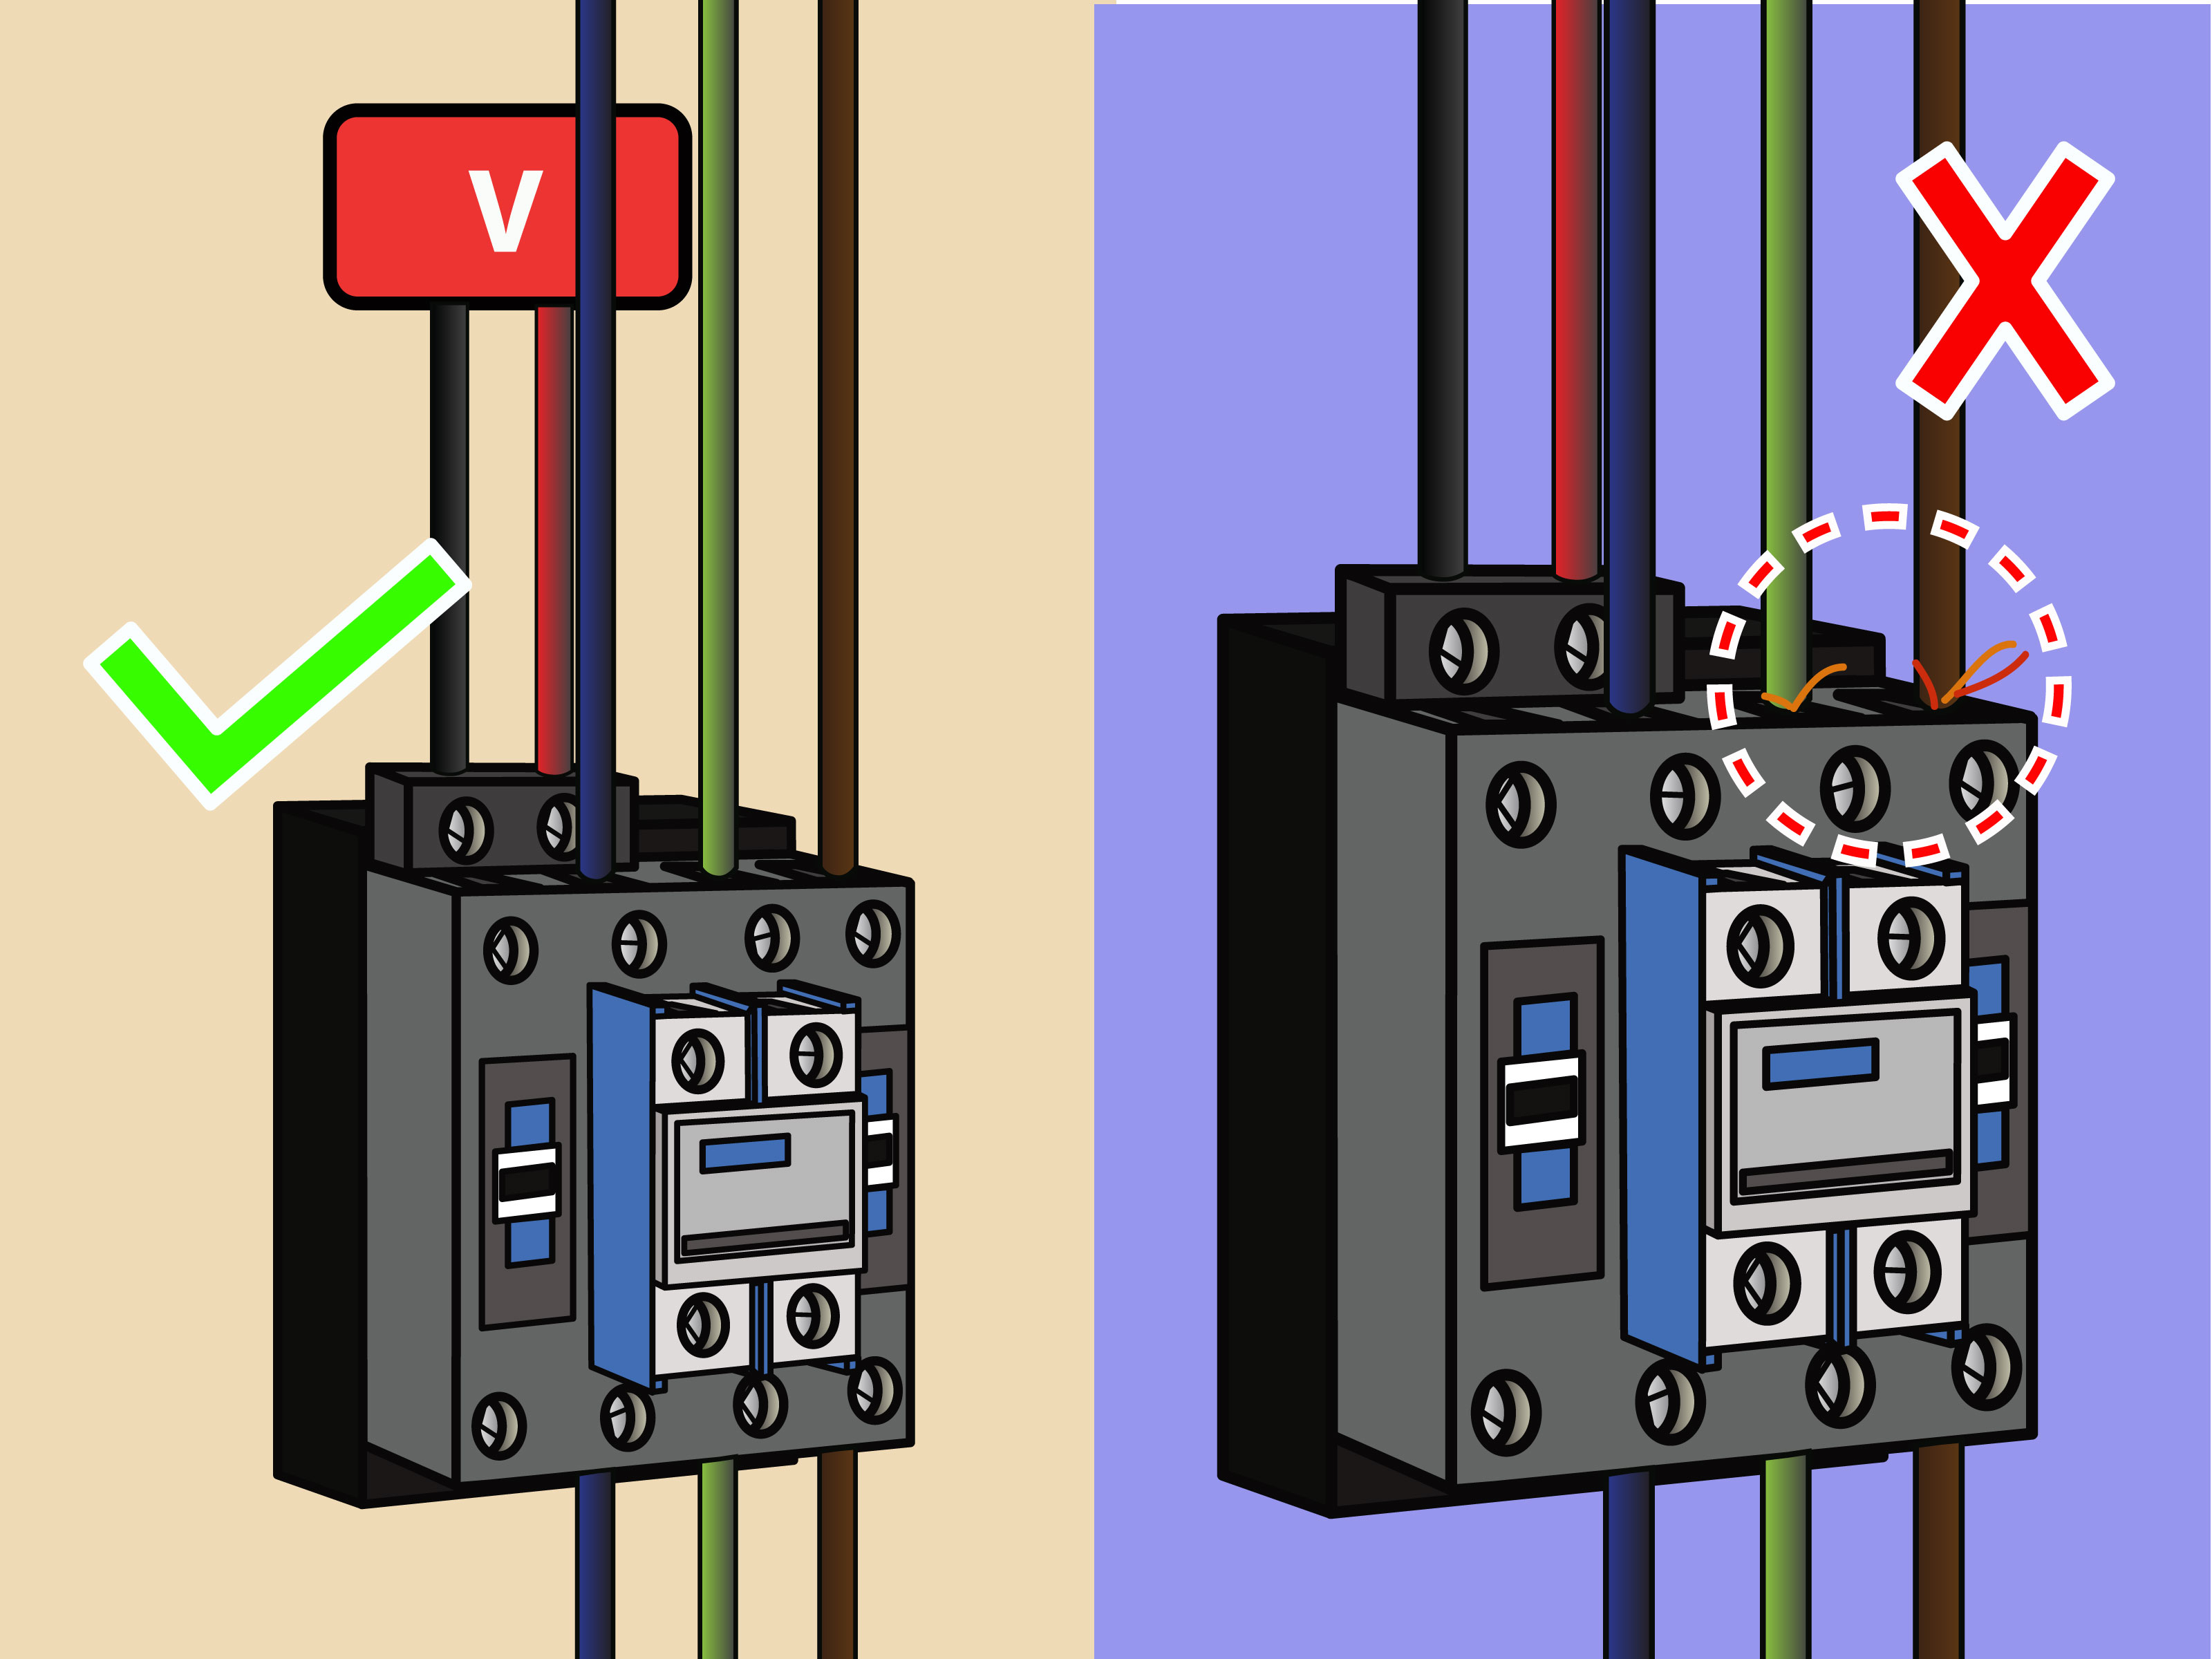 How To Wire A Contactor: 8 Steps (With Pictures) - Wikihow - Contactor Wiring Diagram